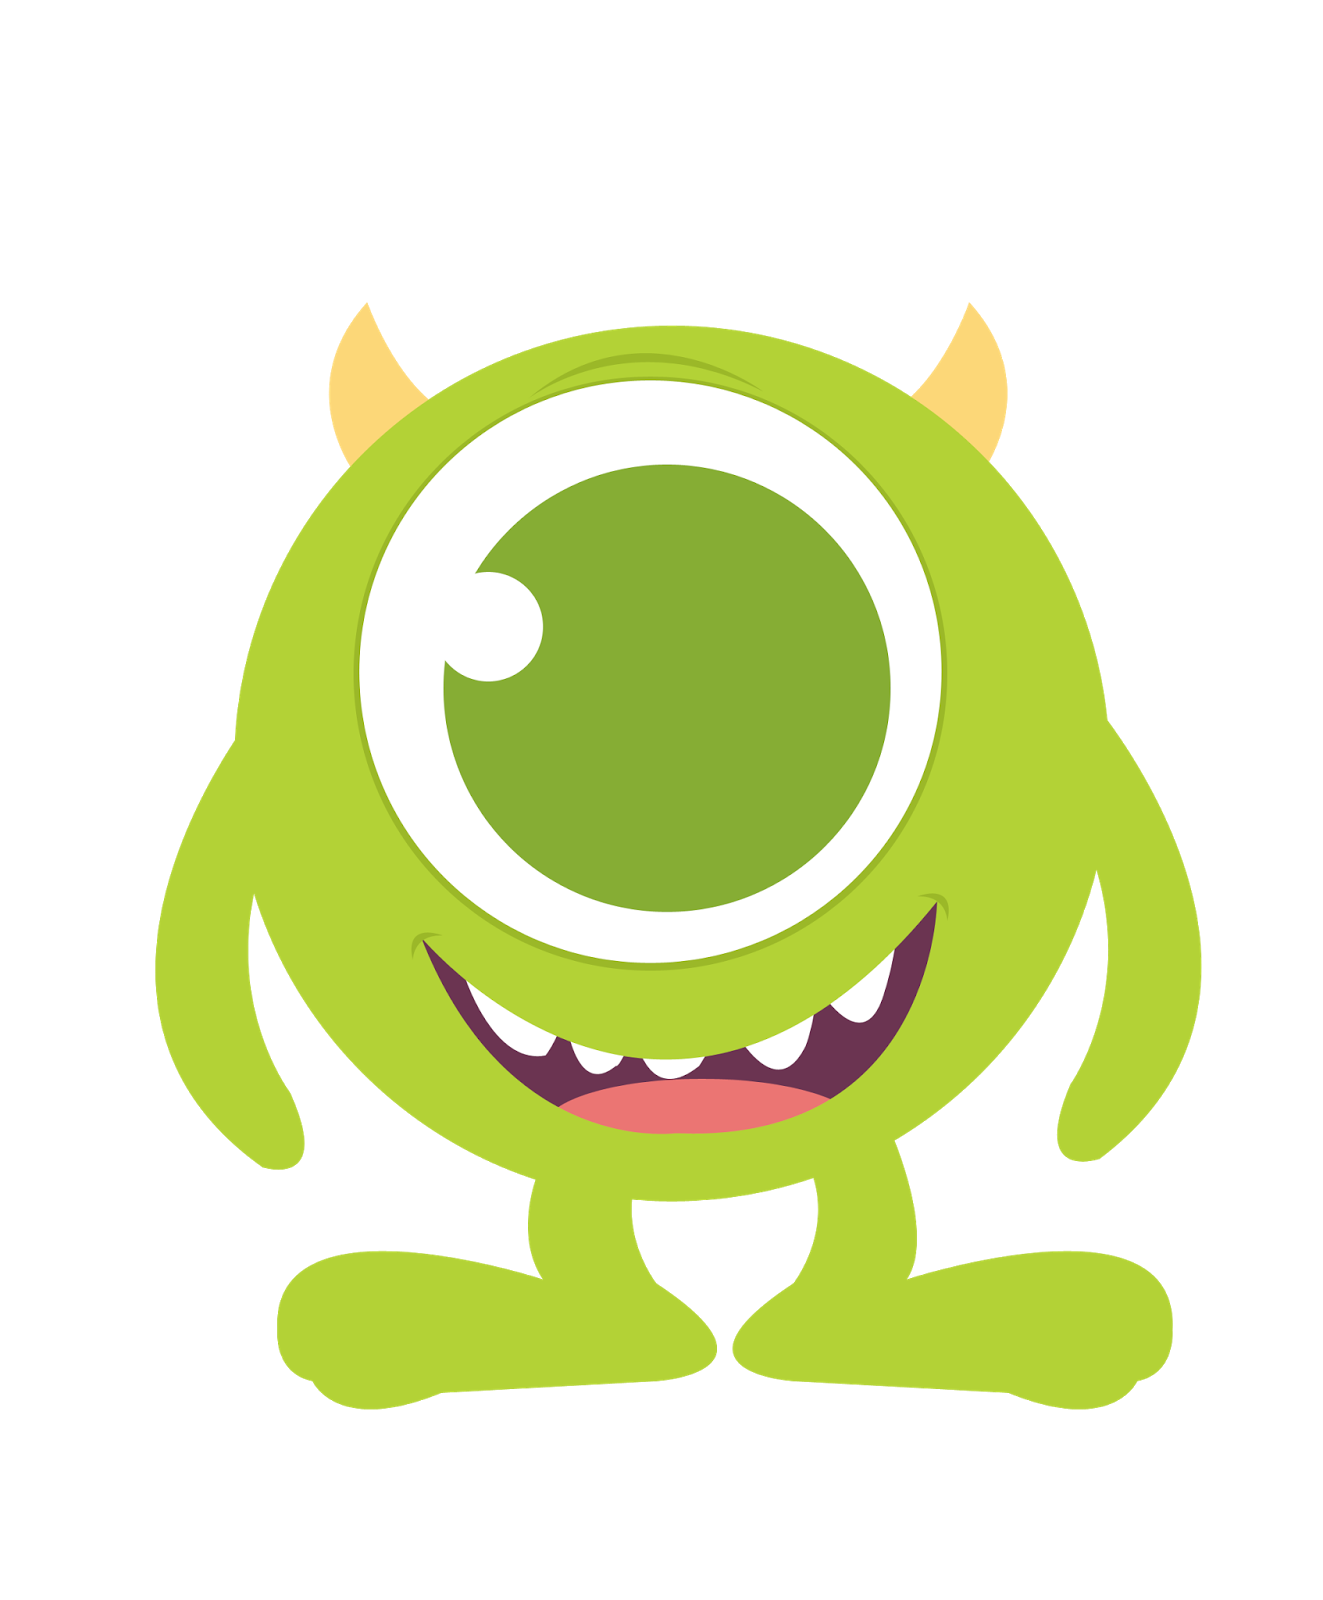 Cute Mike Wazowski Wallpaper Monster Inc Babies Clip Art Oh My Baby